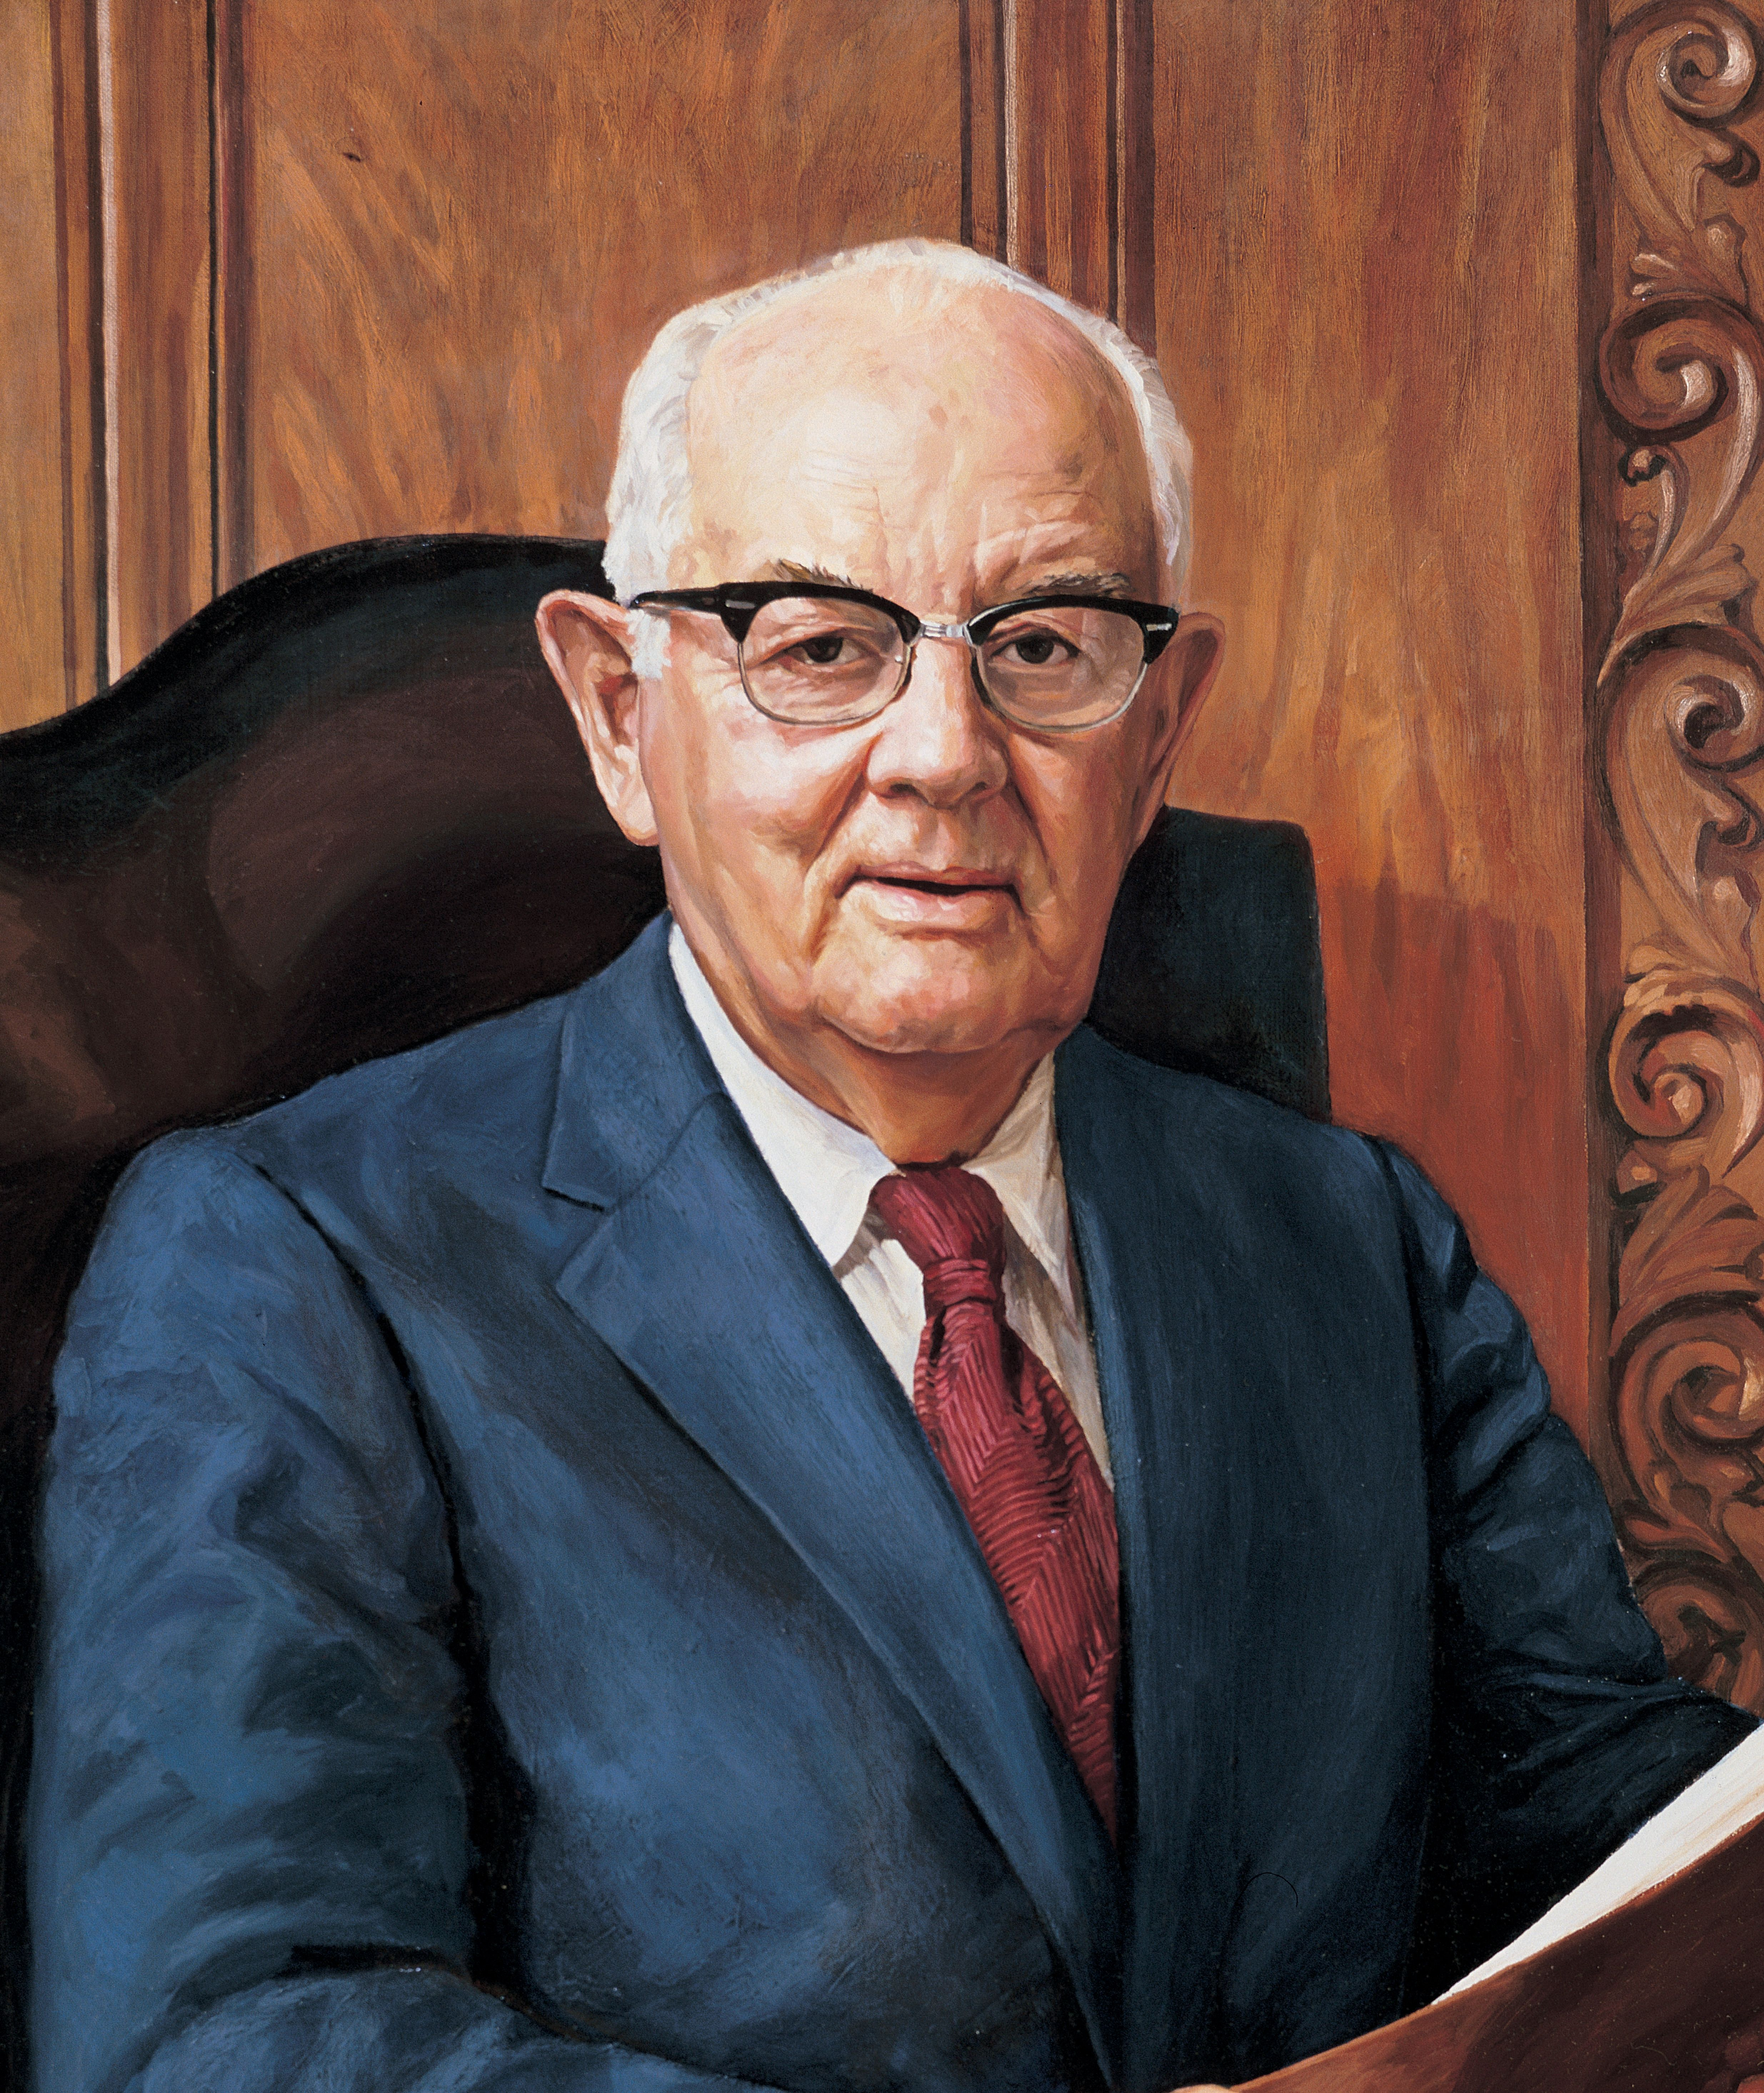 Spencer W. Kimball, by Judith A. Mehr. President Kimball served as the 12th President of the Church from 1973 to 1985.